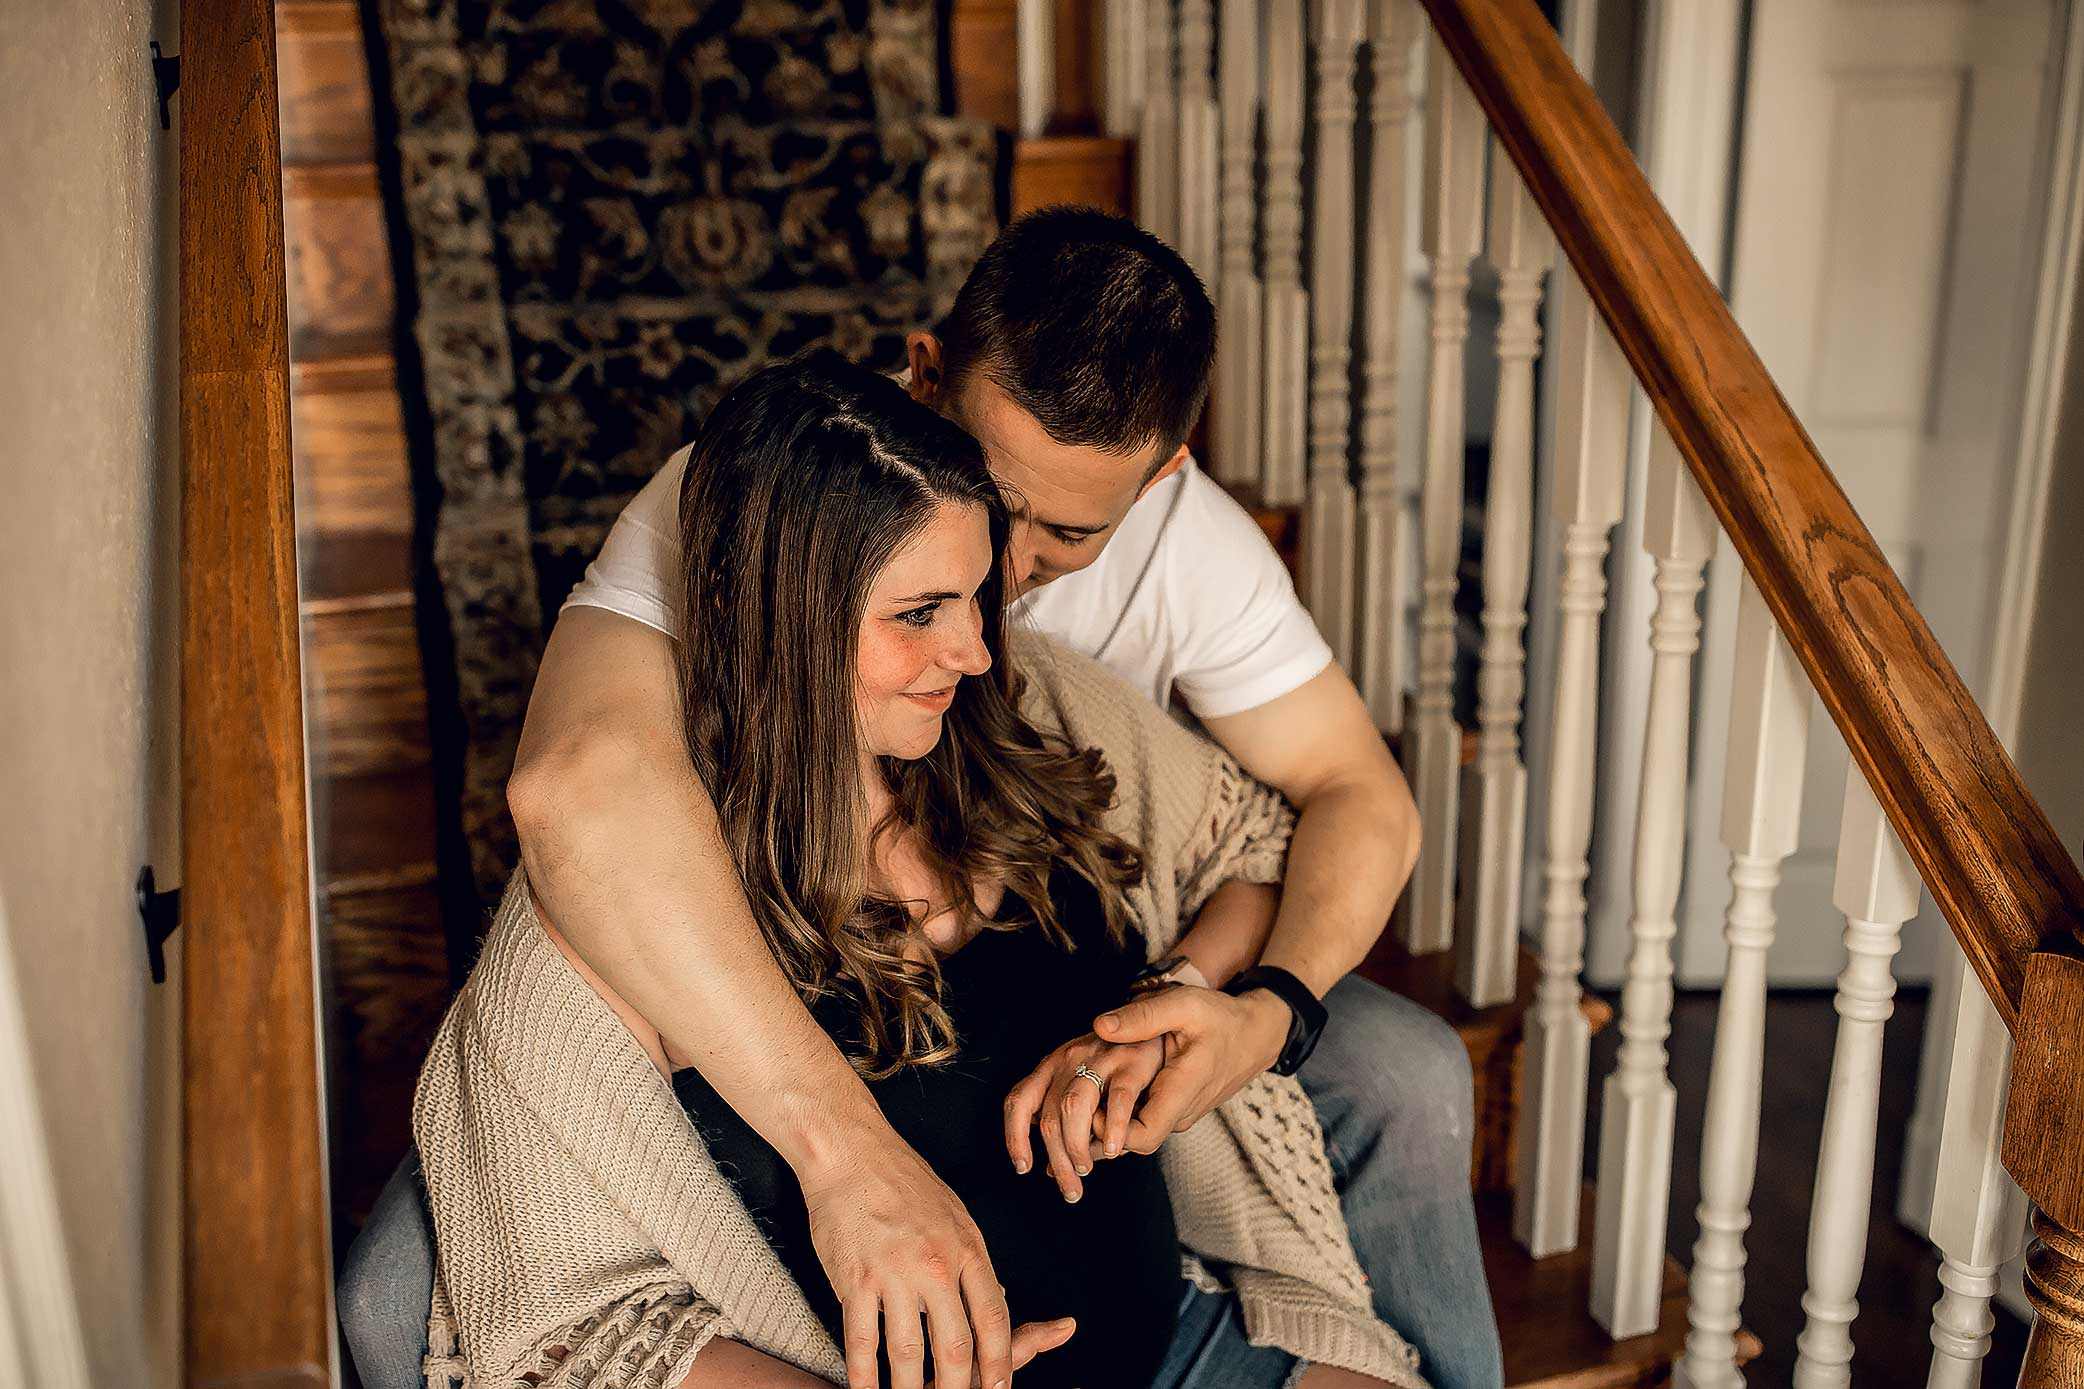 shelby-schiller-photography-couples-snuggled-up-on-stairway.jpg